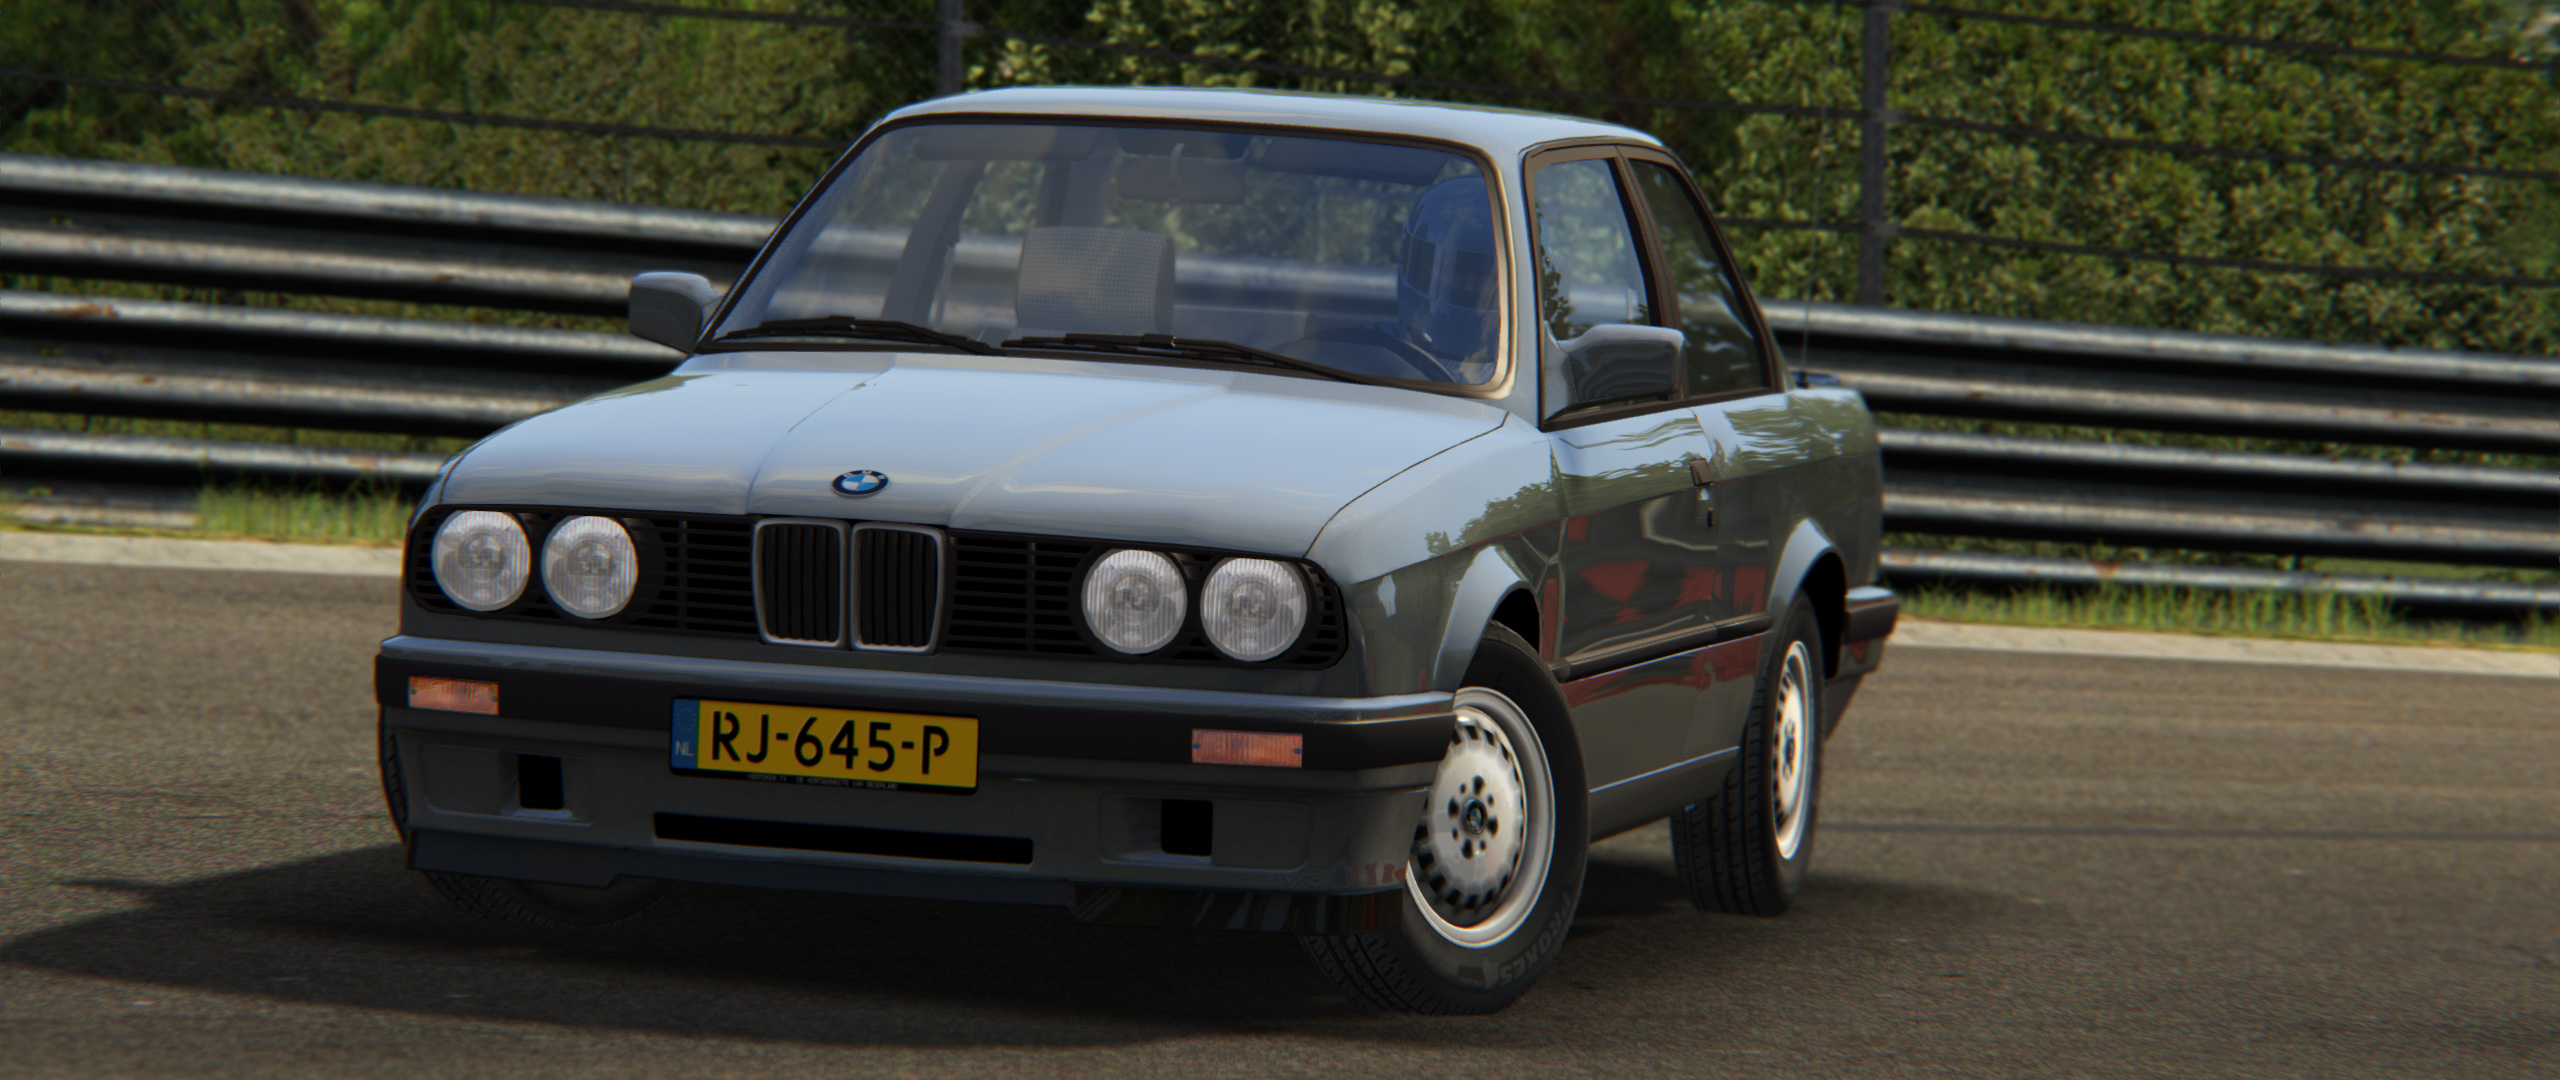 Bmw E30 325i Coupe Racedepartment